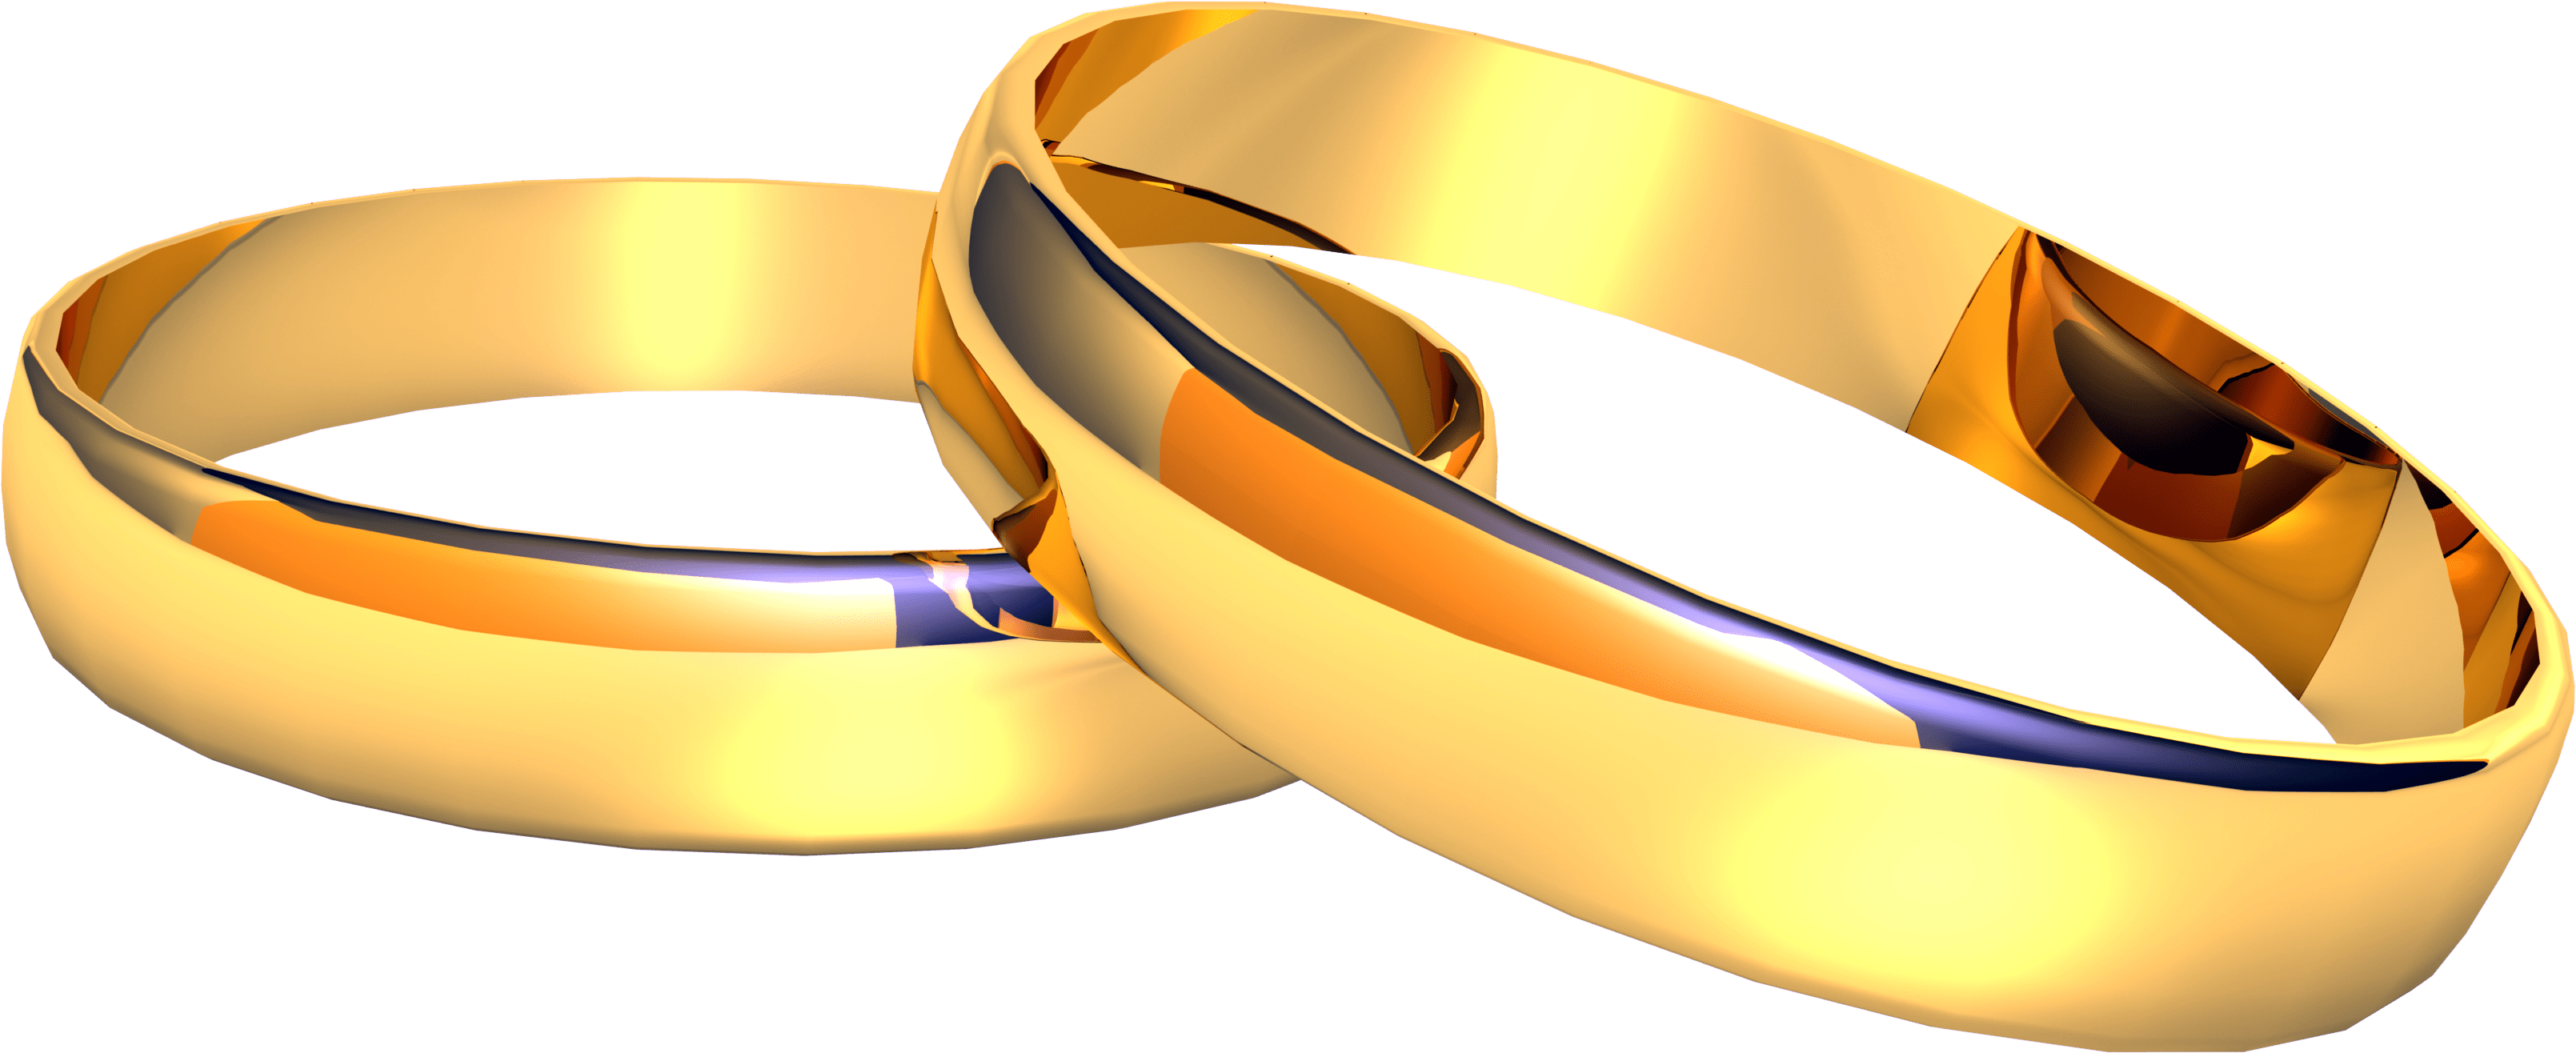 Shiny Wedding Rings Transparent Png Stickpng